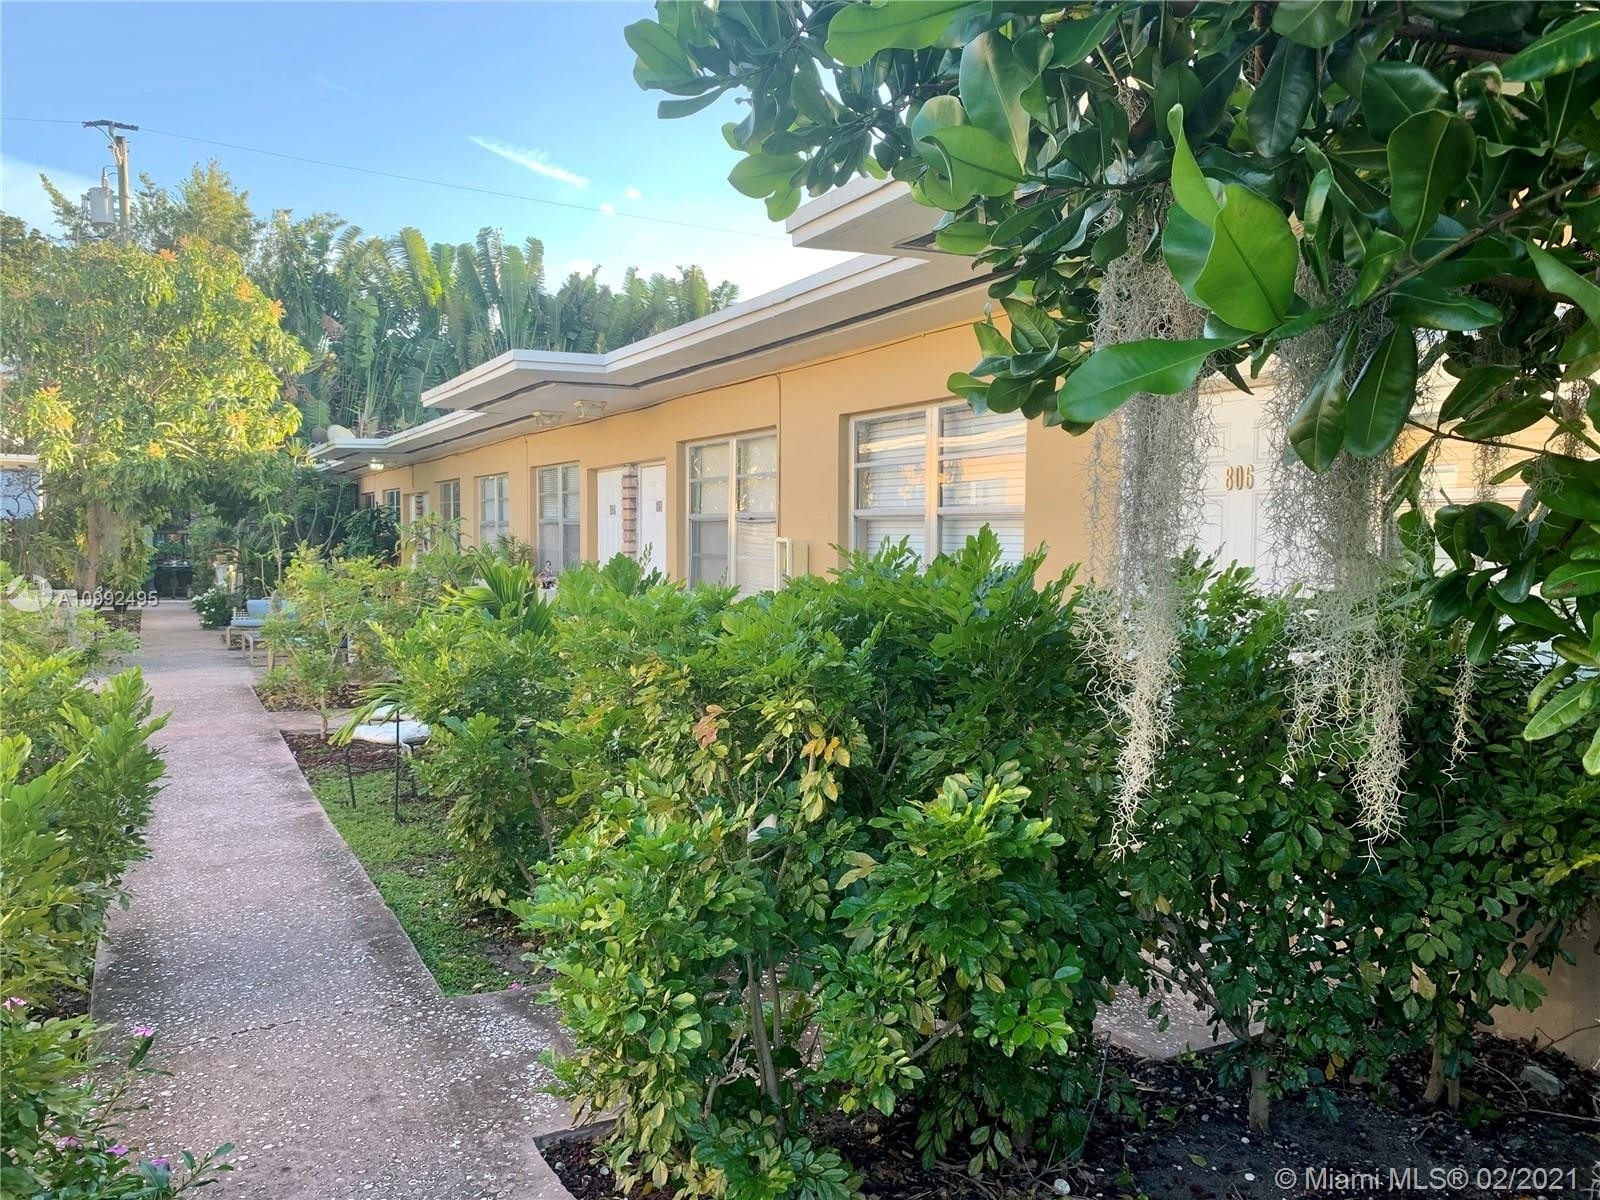 Casa unifamiliar multifamiliar por un Venta en Biscayne Point, Miami Beach, FL 33141